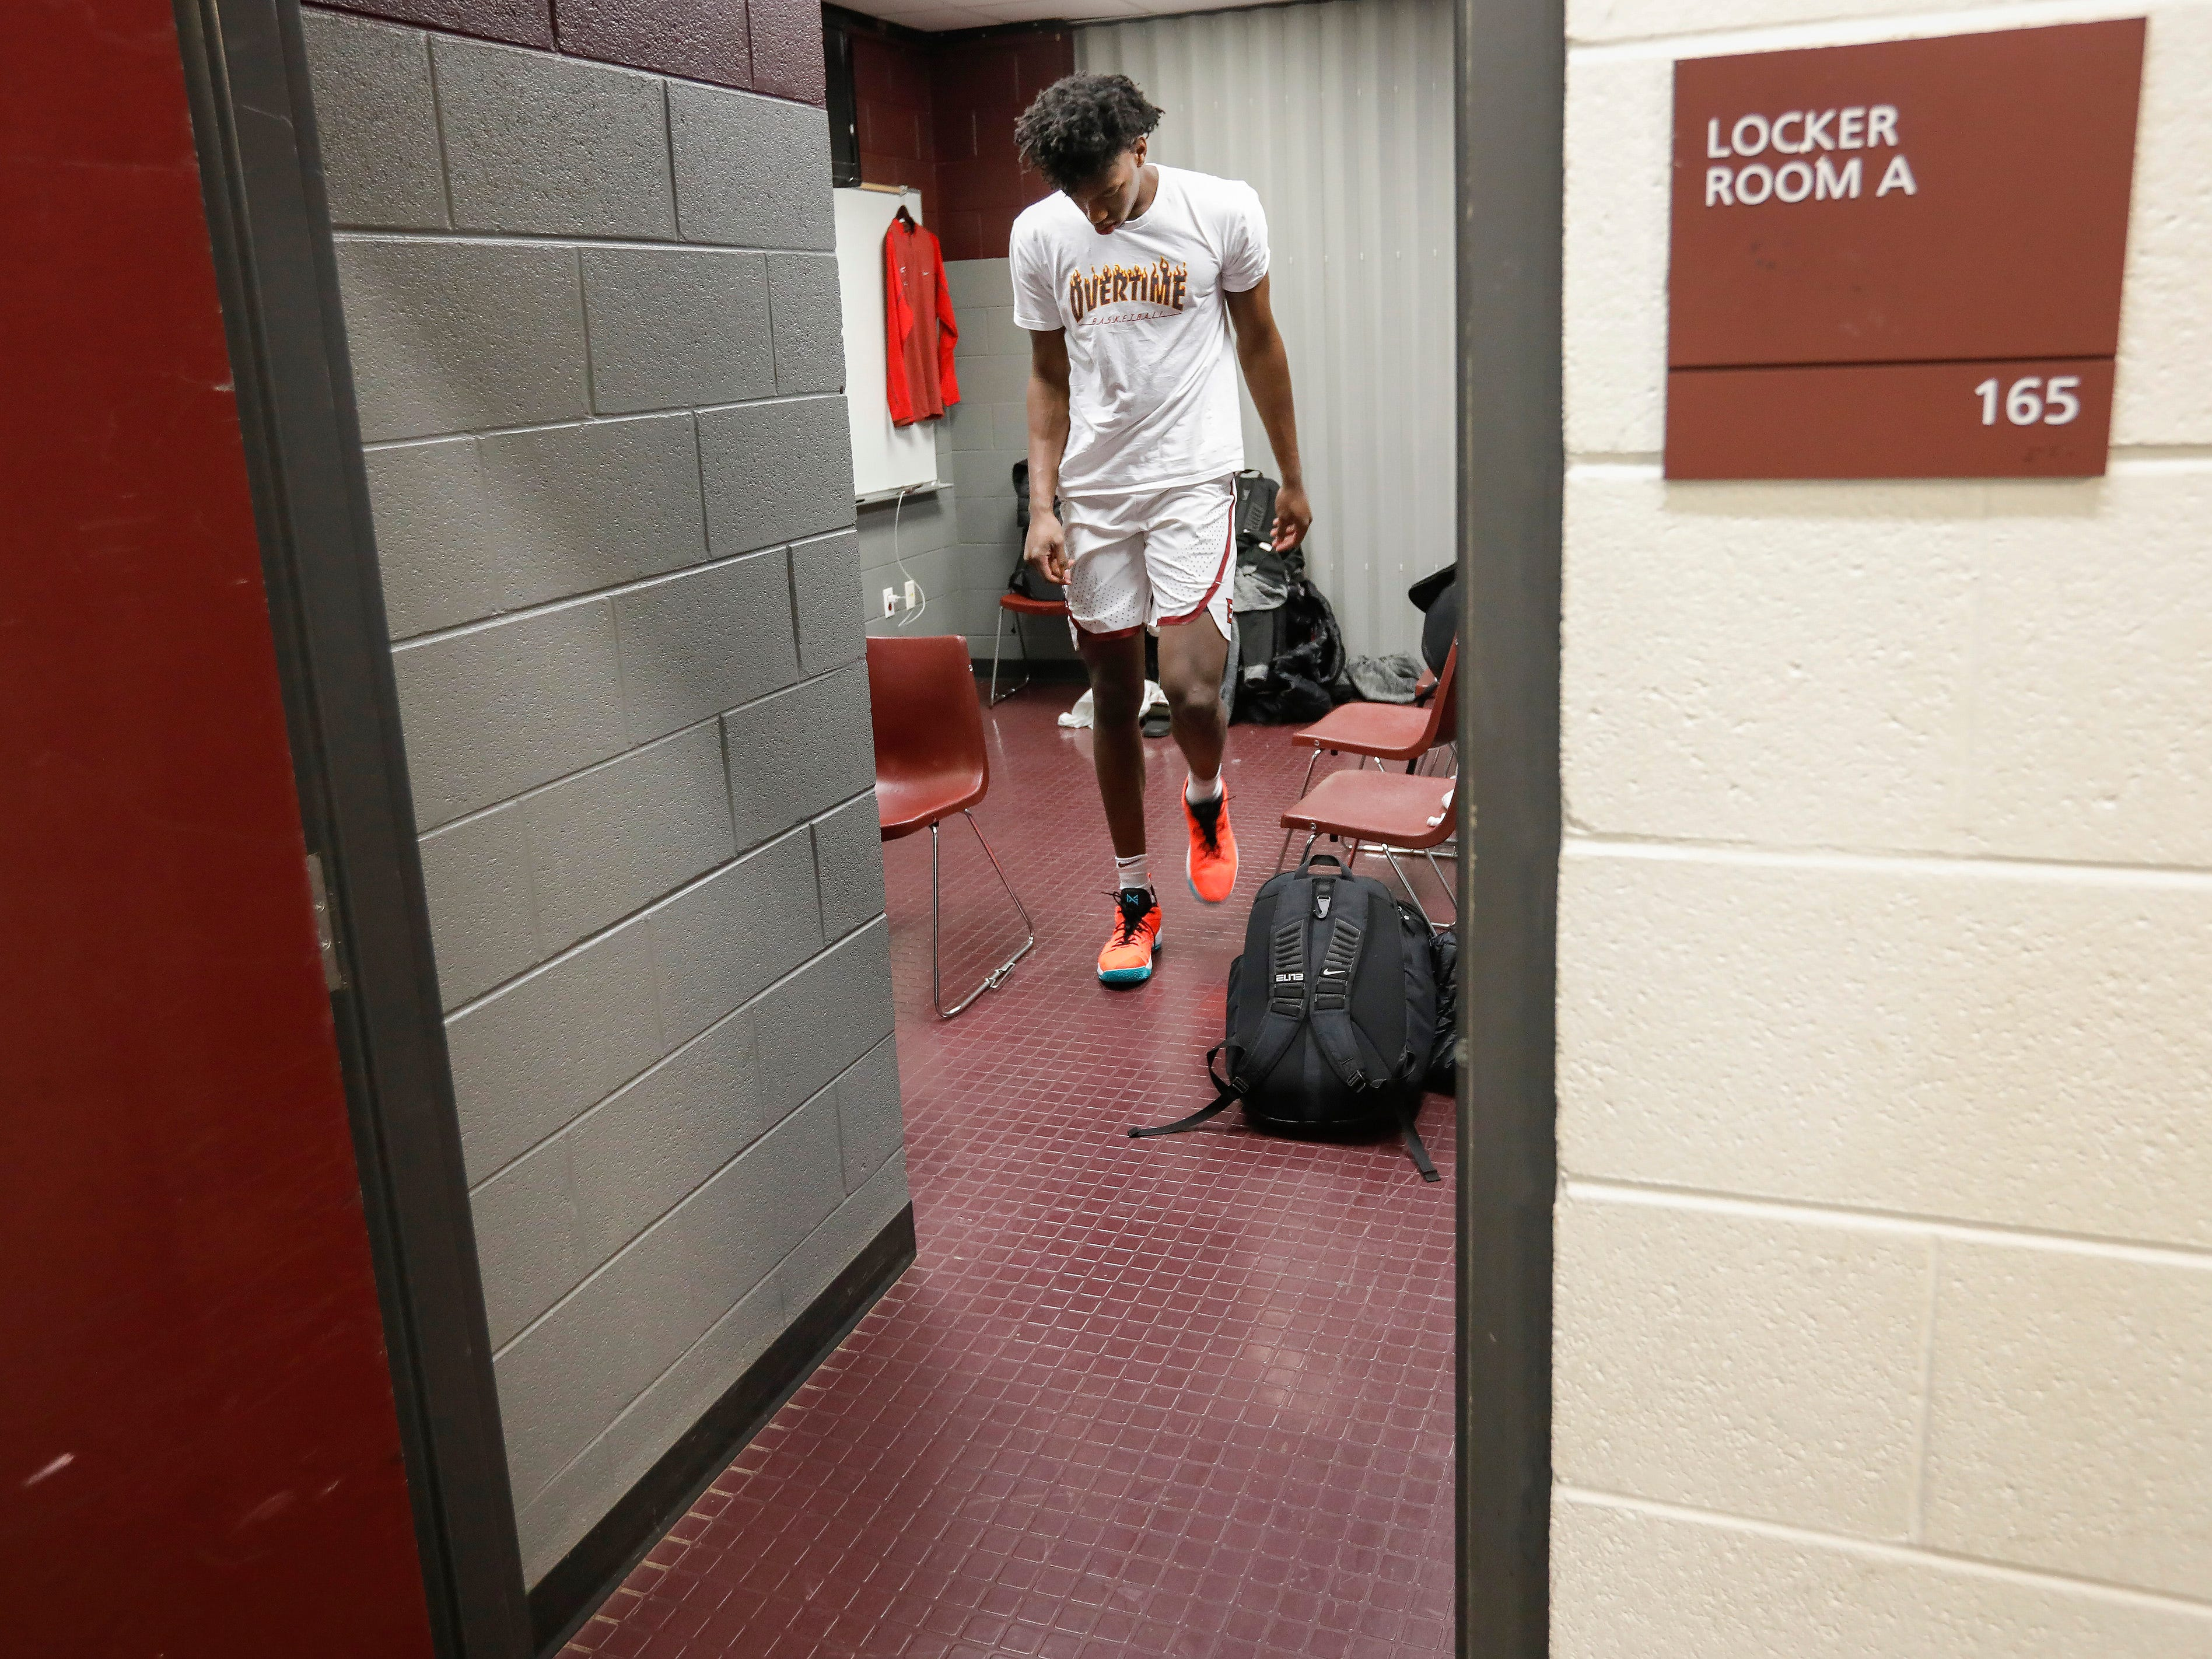 James Wiseman, center, of Memphis East High School, walks out of the locker room at JQH Arena for the Bass Pro Shops Tournament of Champions on Thursday, Jan. 17, 2019.